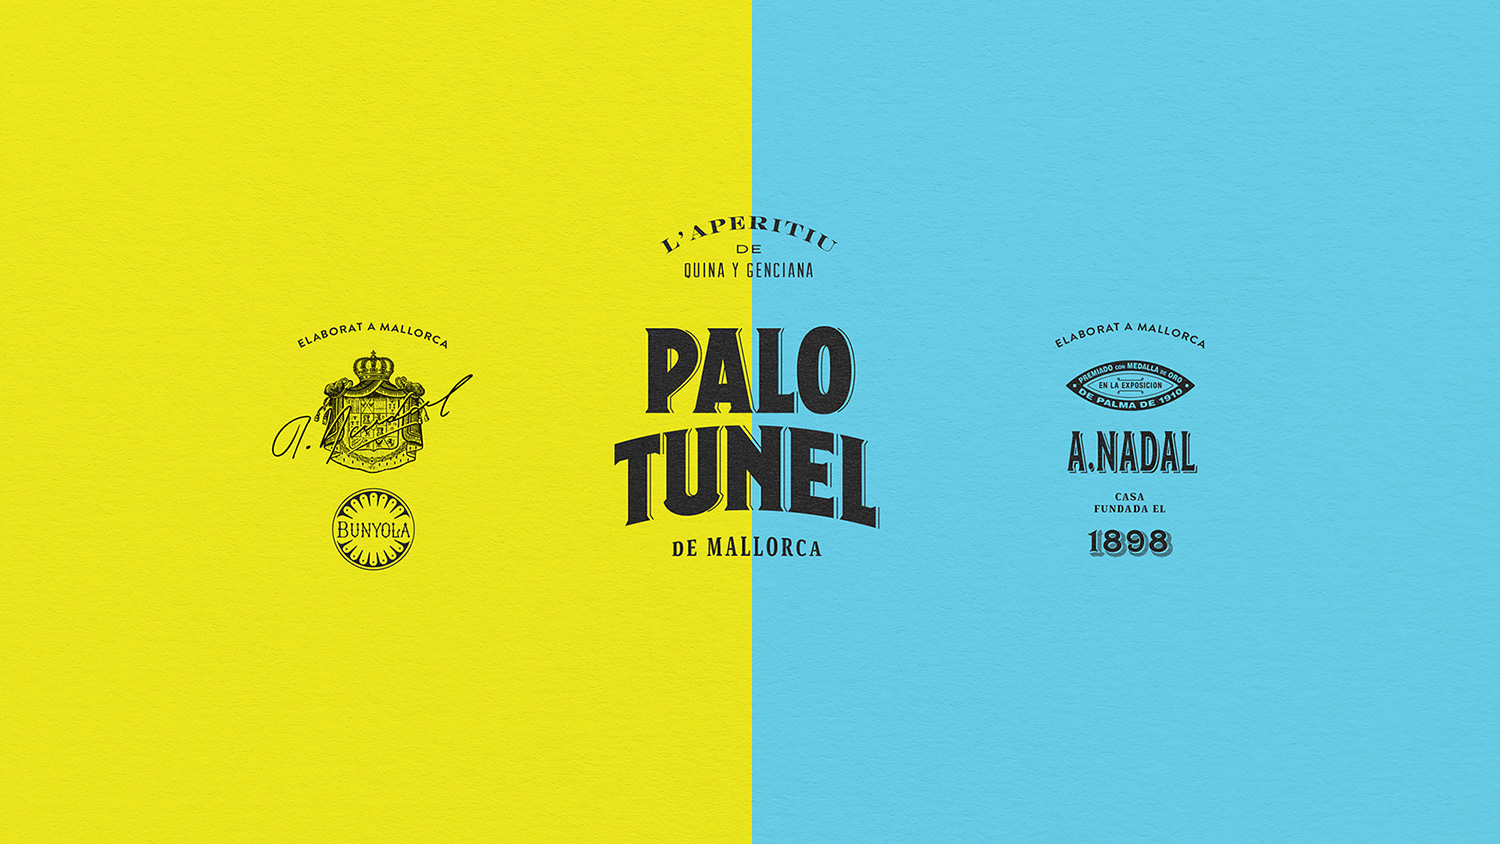 palotunnel mrcup 03